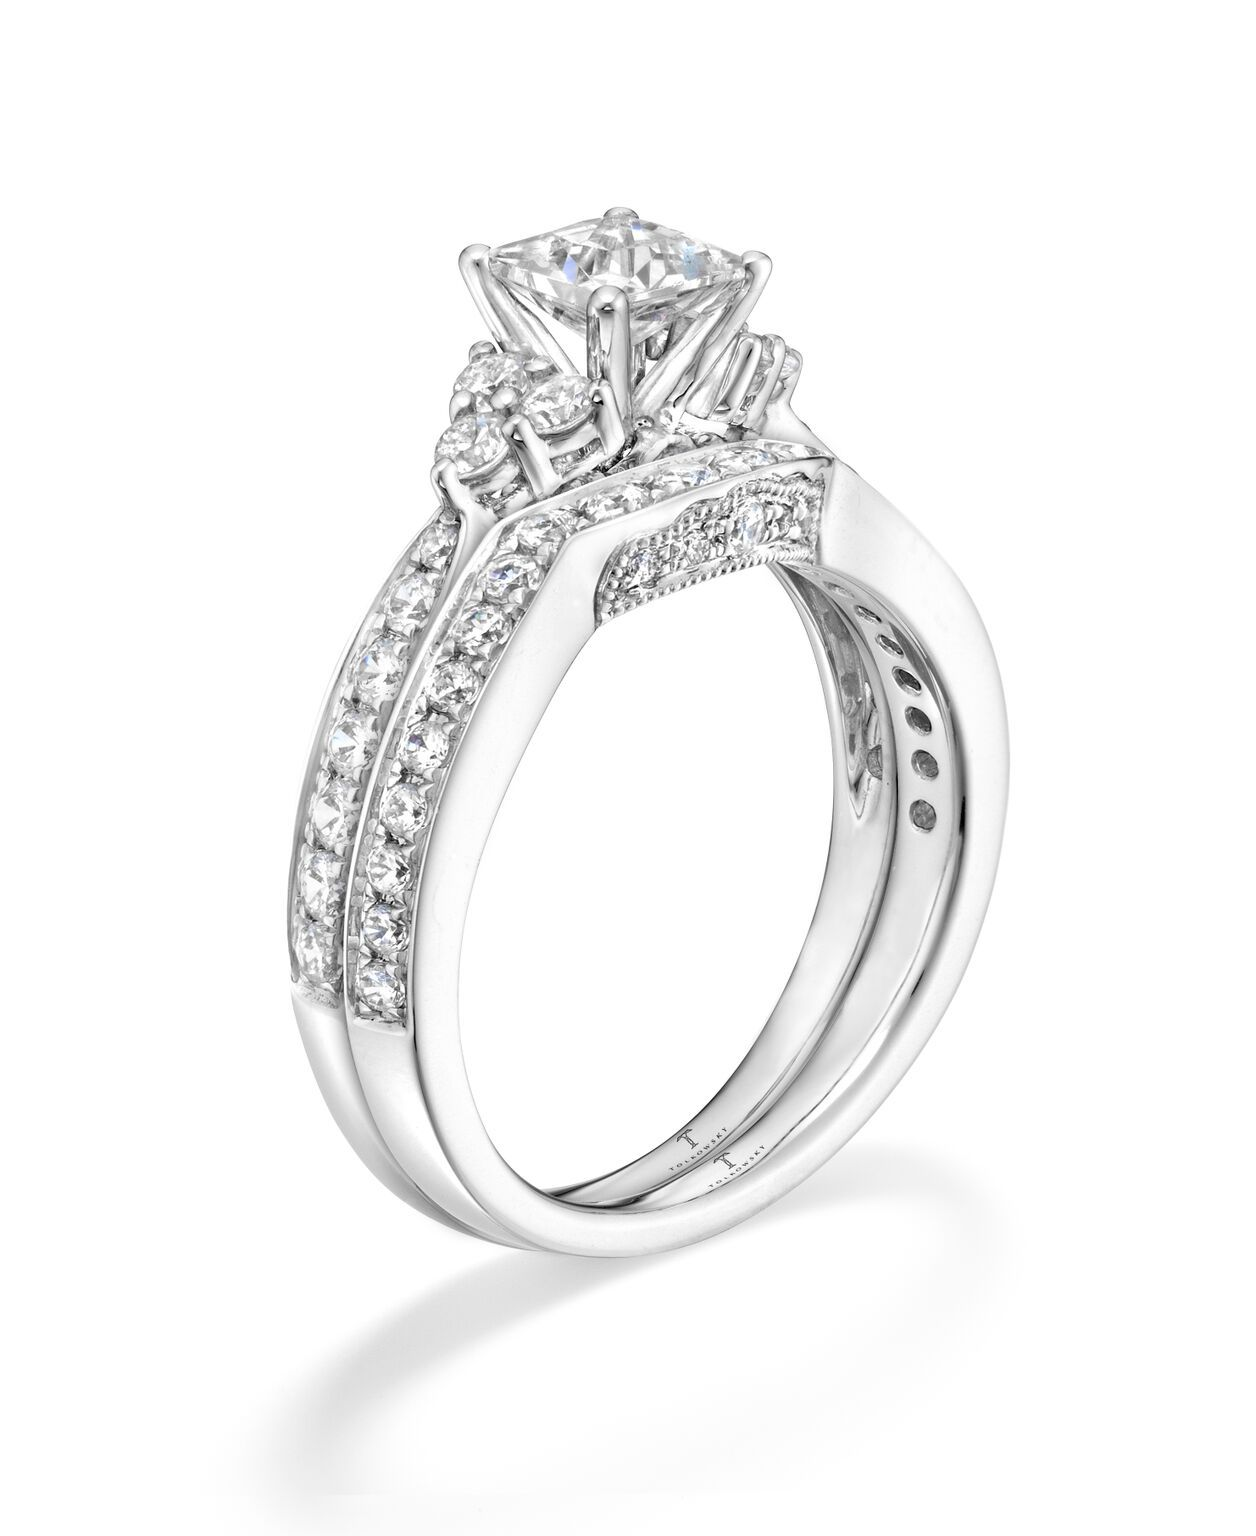 Tolkowsky Diamond Bridal Set in 14K White Gold Available in the